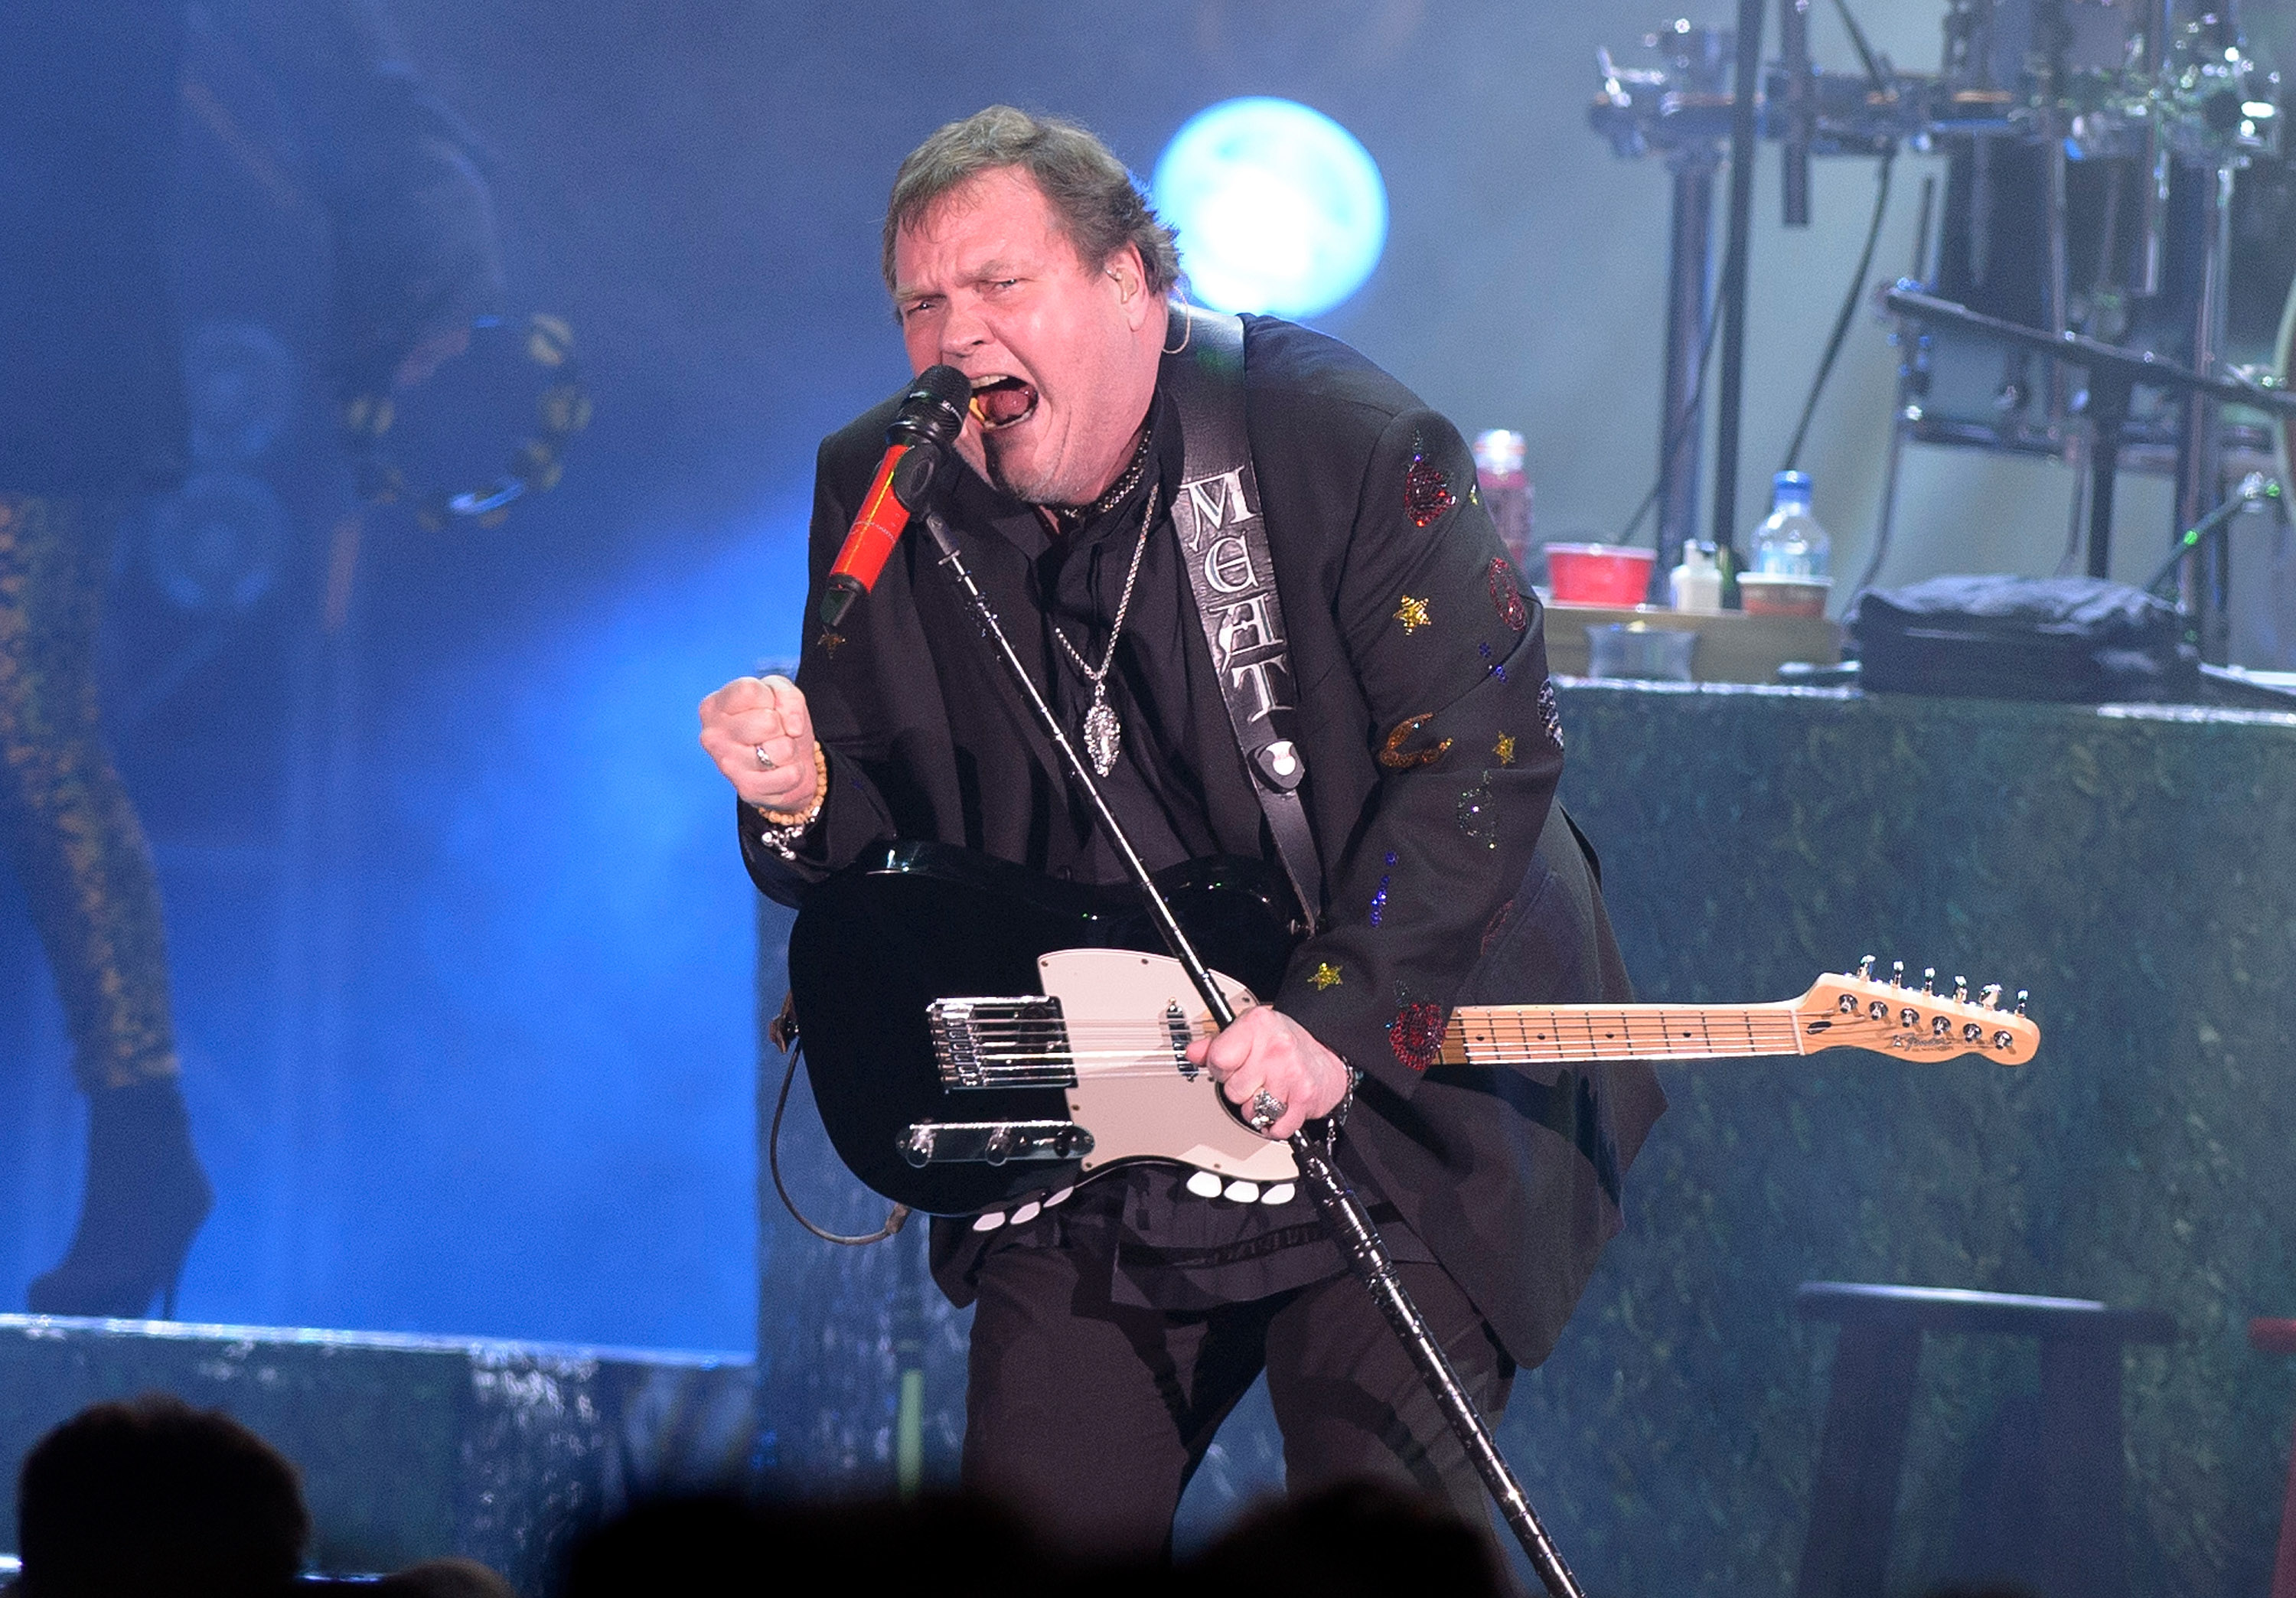 MUNICH, GERMANY - APRIL 30: Meat Loaf performs on stage at Olympiahalle on April 30, 2013 in Munich, Germany. (Photo by Stefa